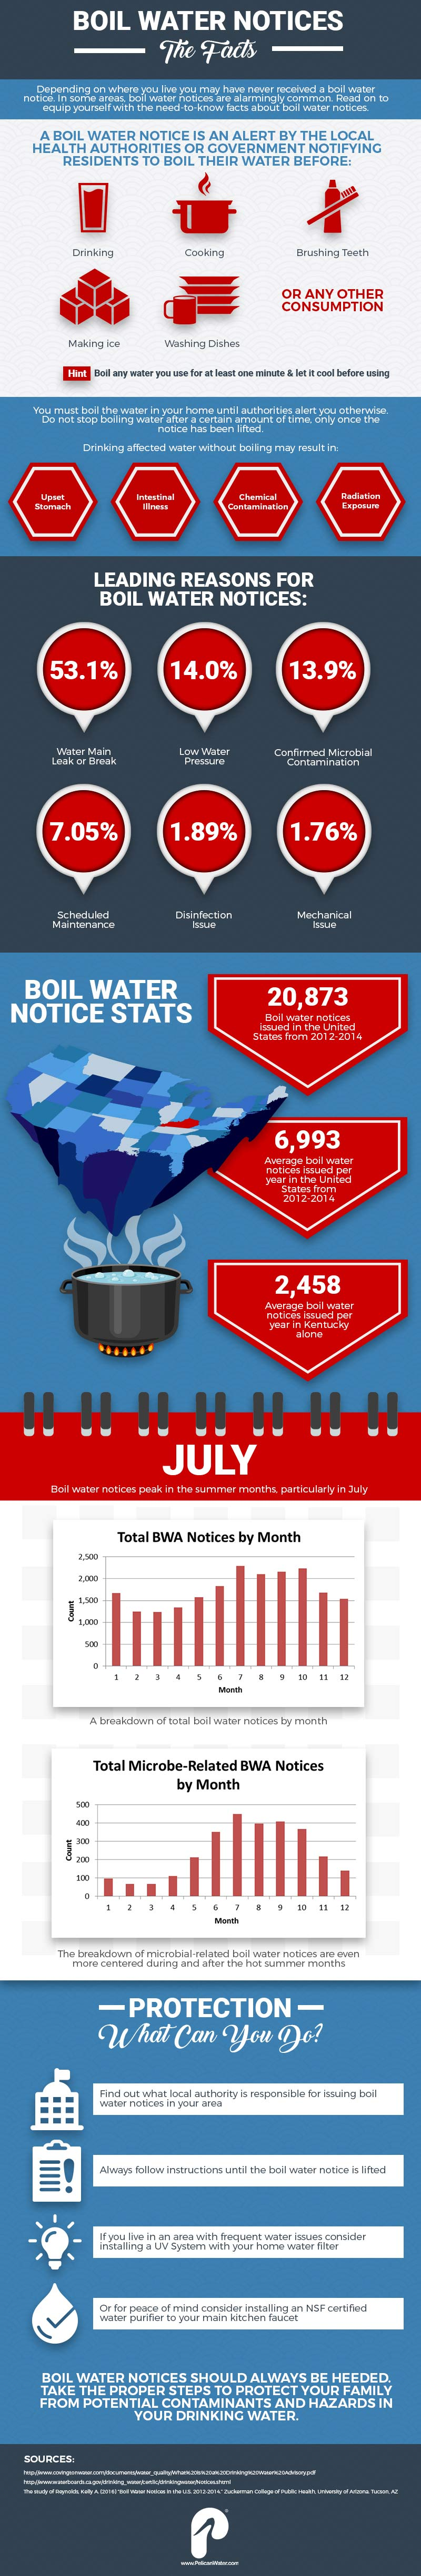 Boil Water Notices Infographic